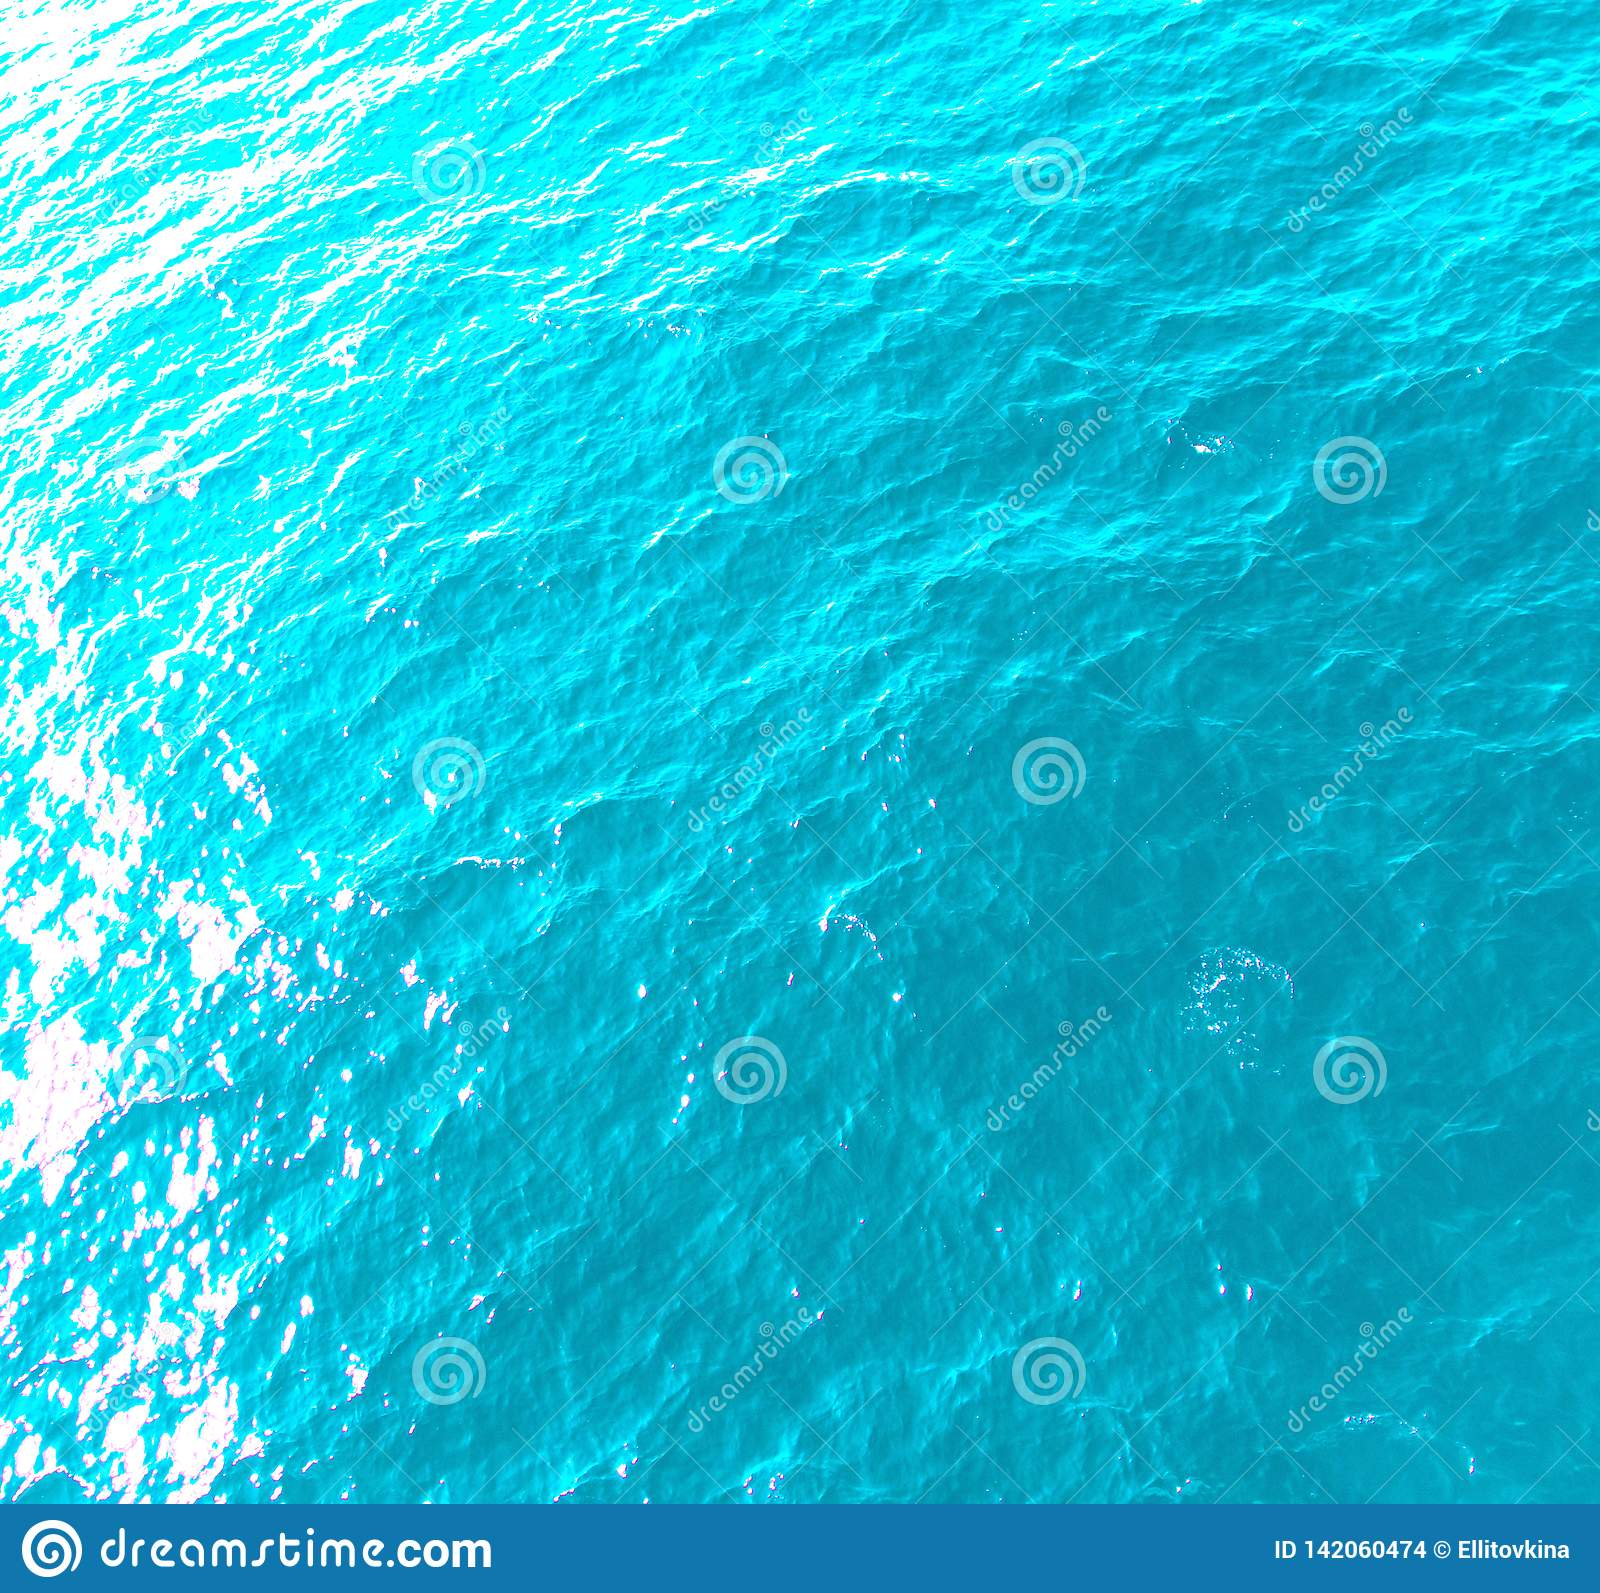 Sea Water Background In Light Blue With Sun Highlights Stock